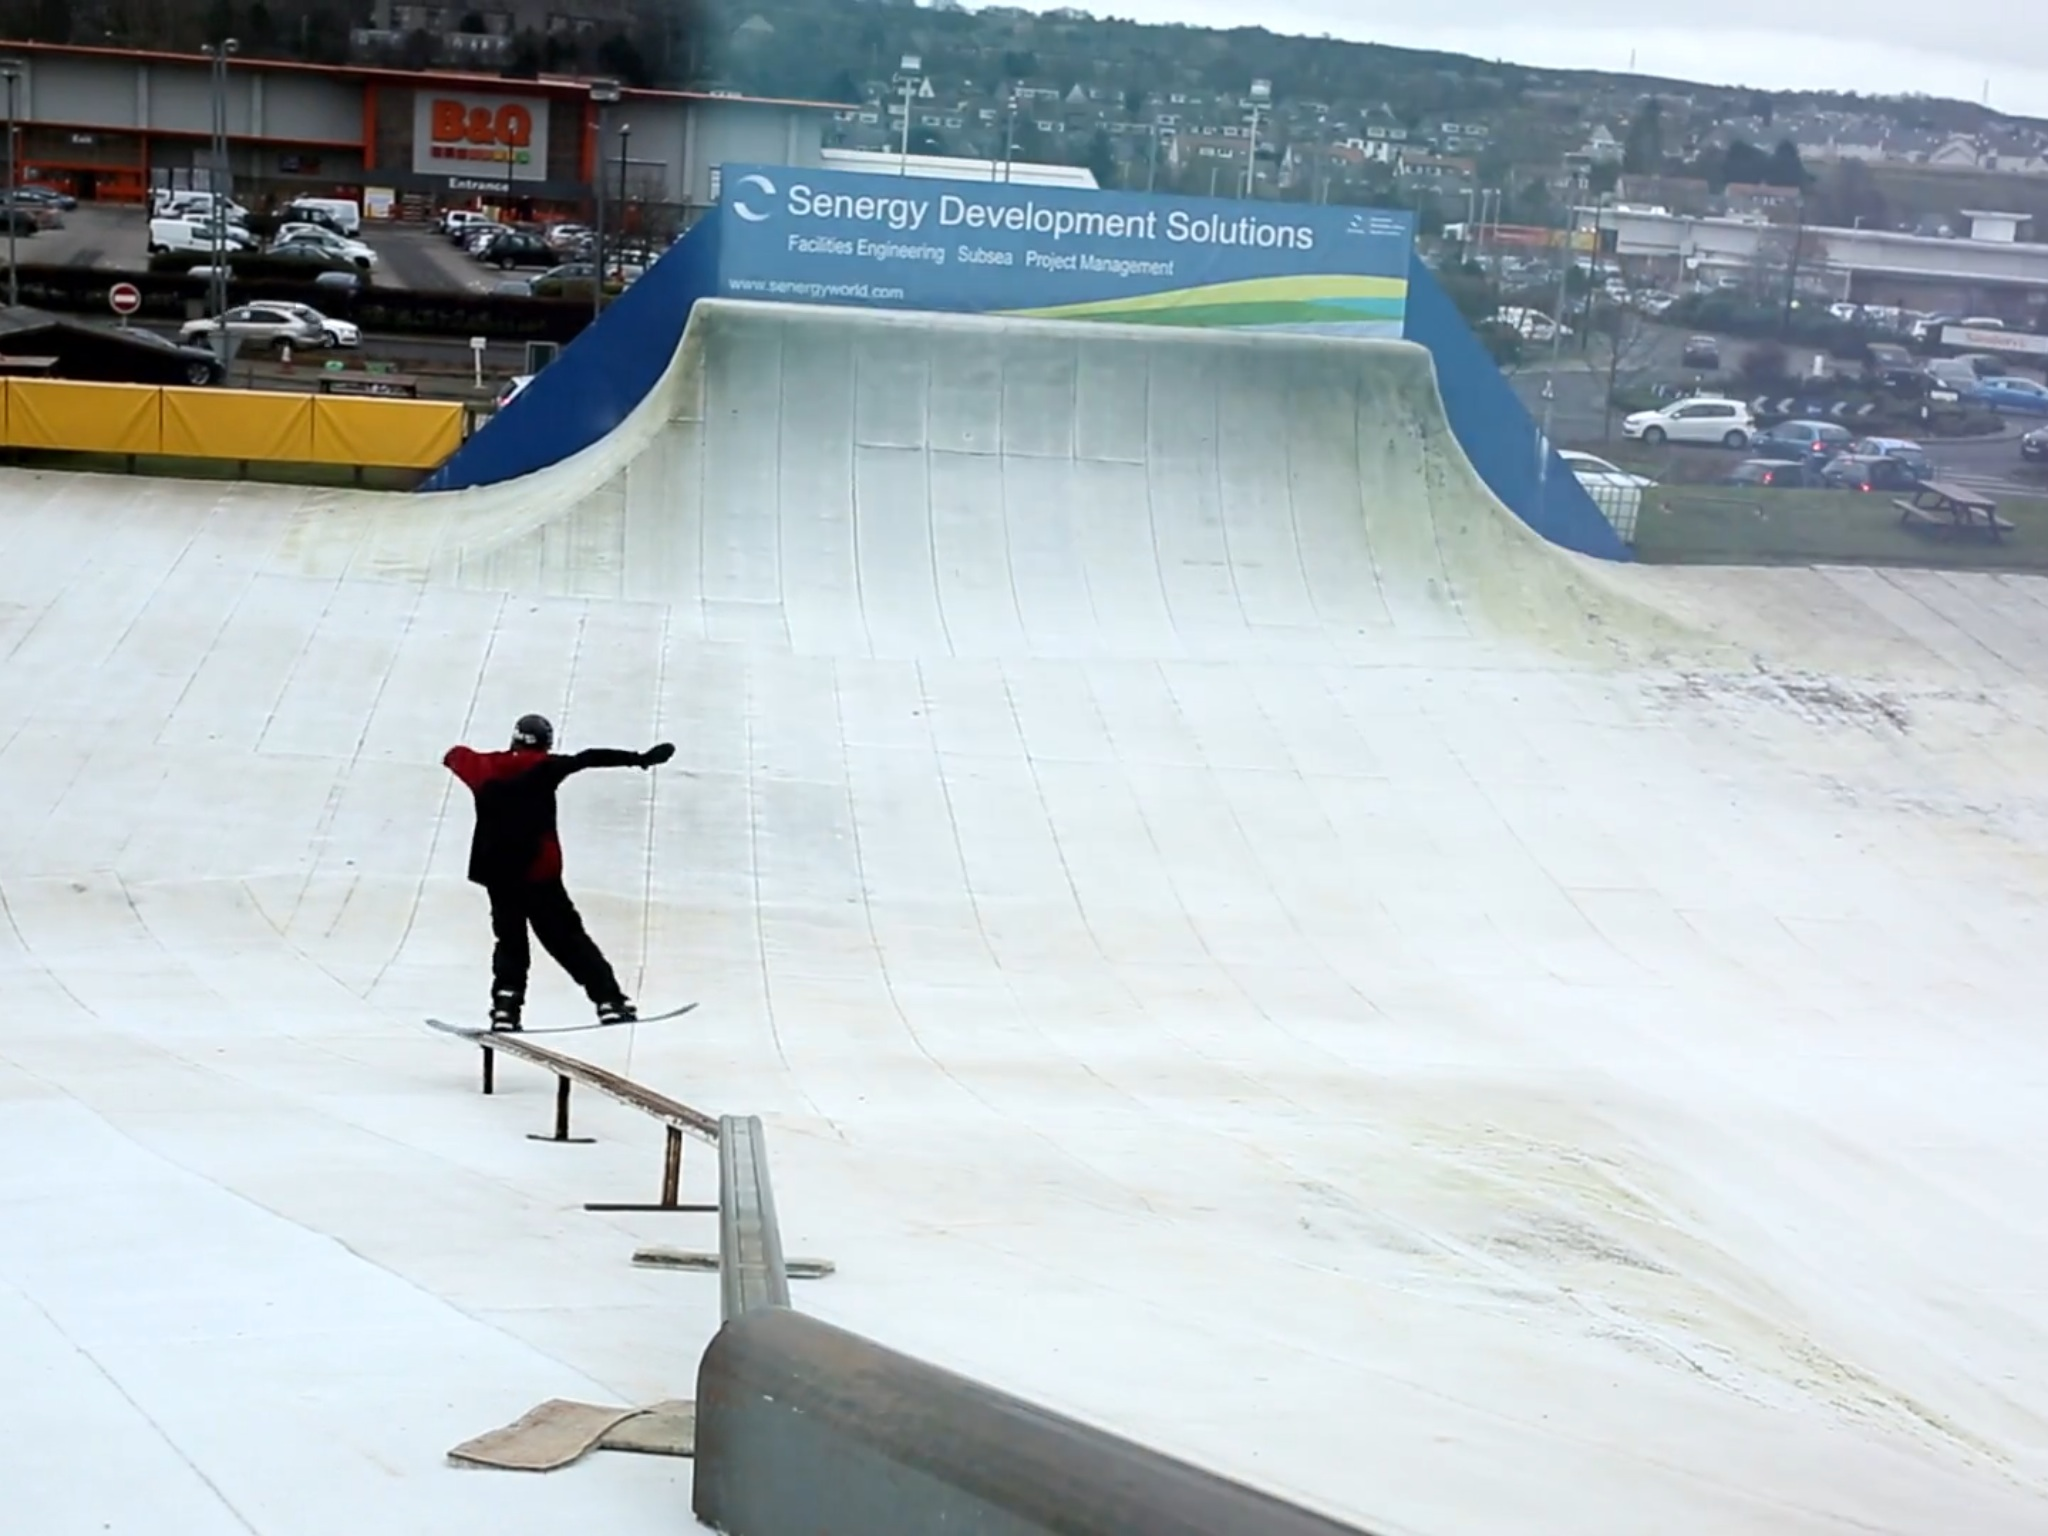 Aberdeen Dry Slope